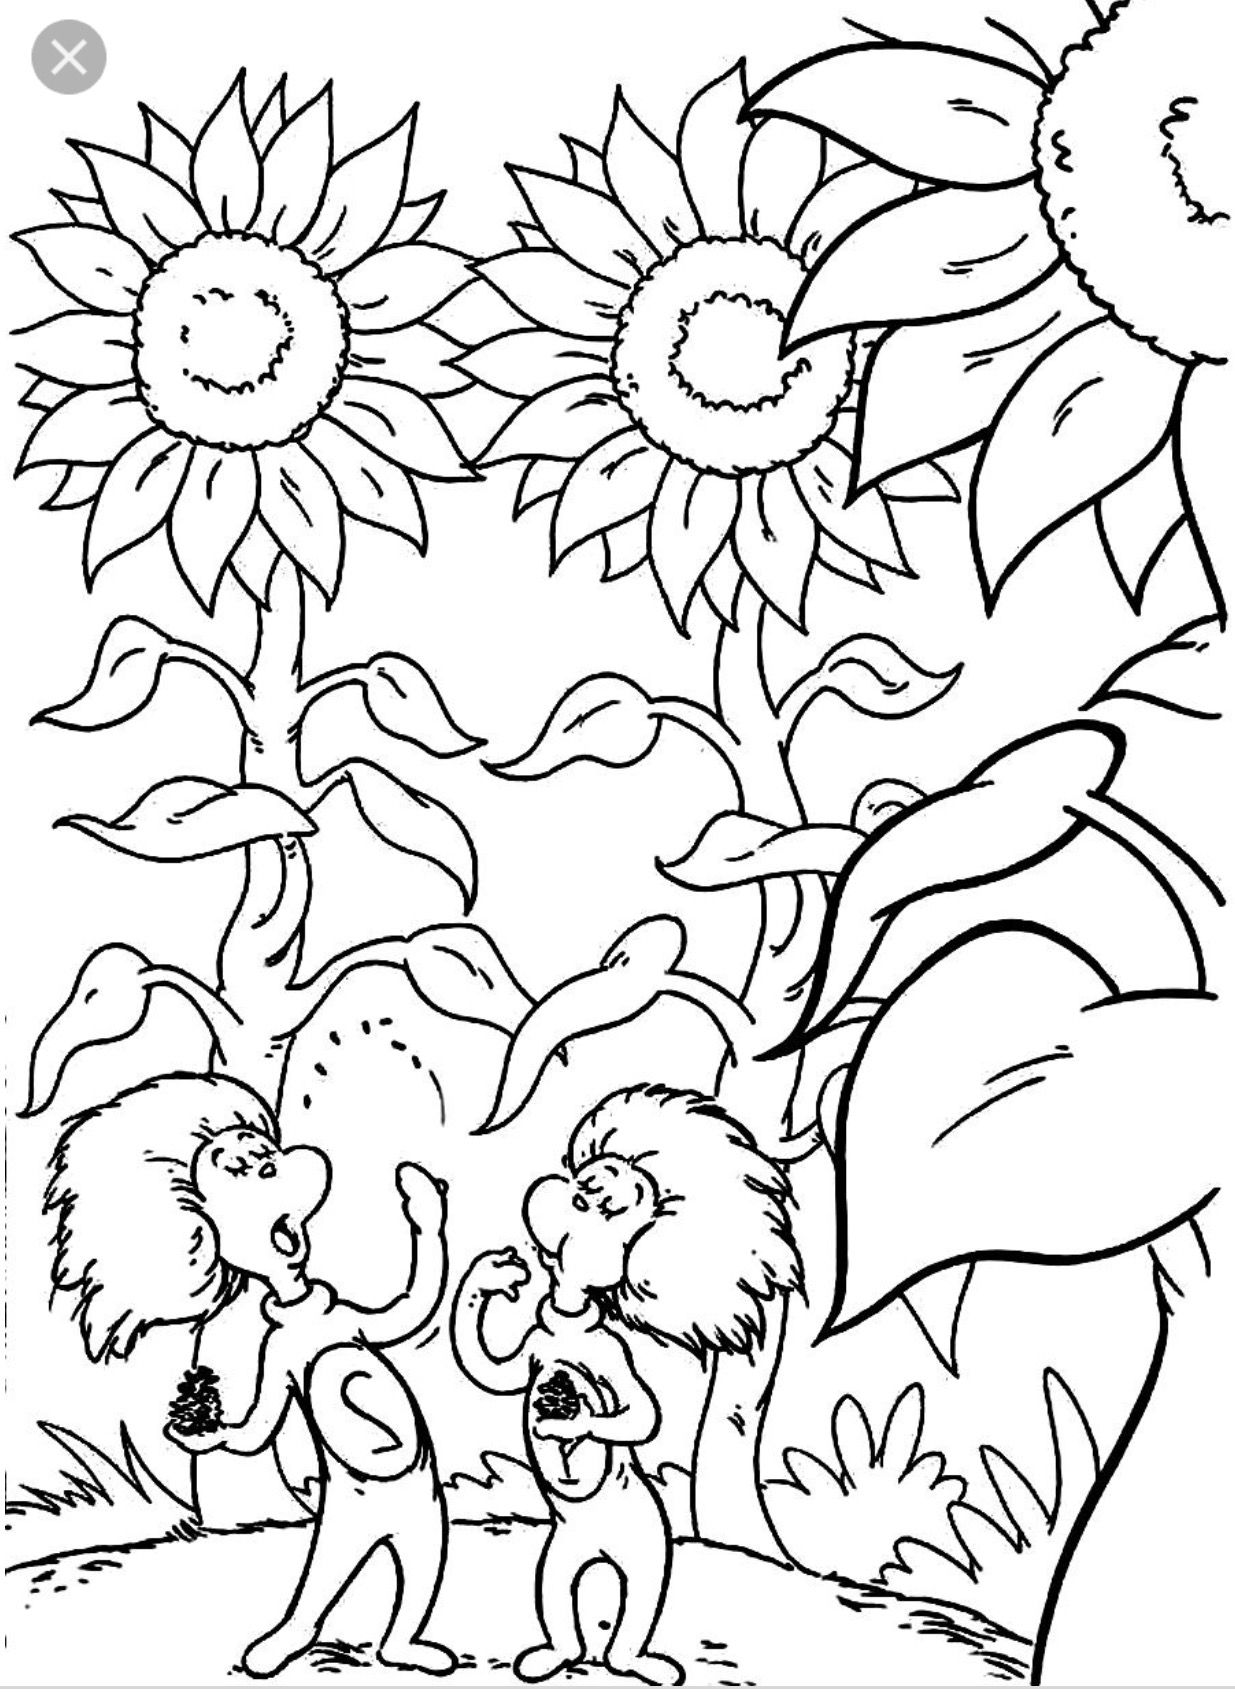 coloring charactors dr seuss for kids suess fall pdf was crayola the first crayons frozen coloring pages Dr.suess Coloring Page